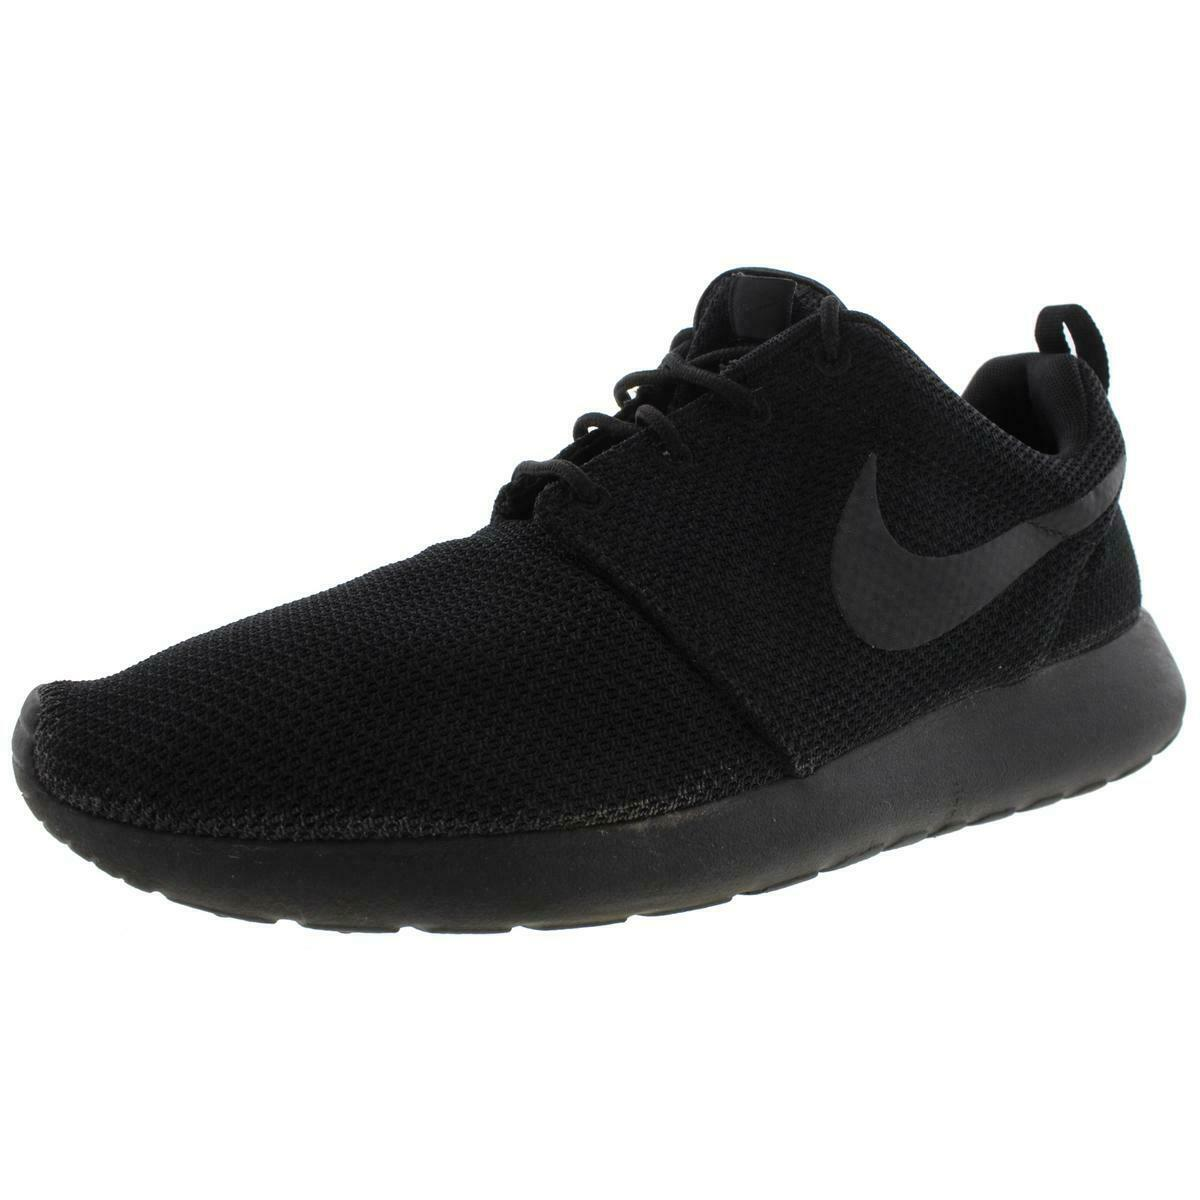 Nike Roshe One Pour Homme engrener FonctionneHommest Cross Training chaussures paniers BHFO 1682